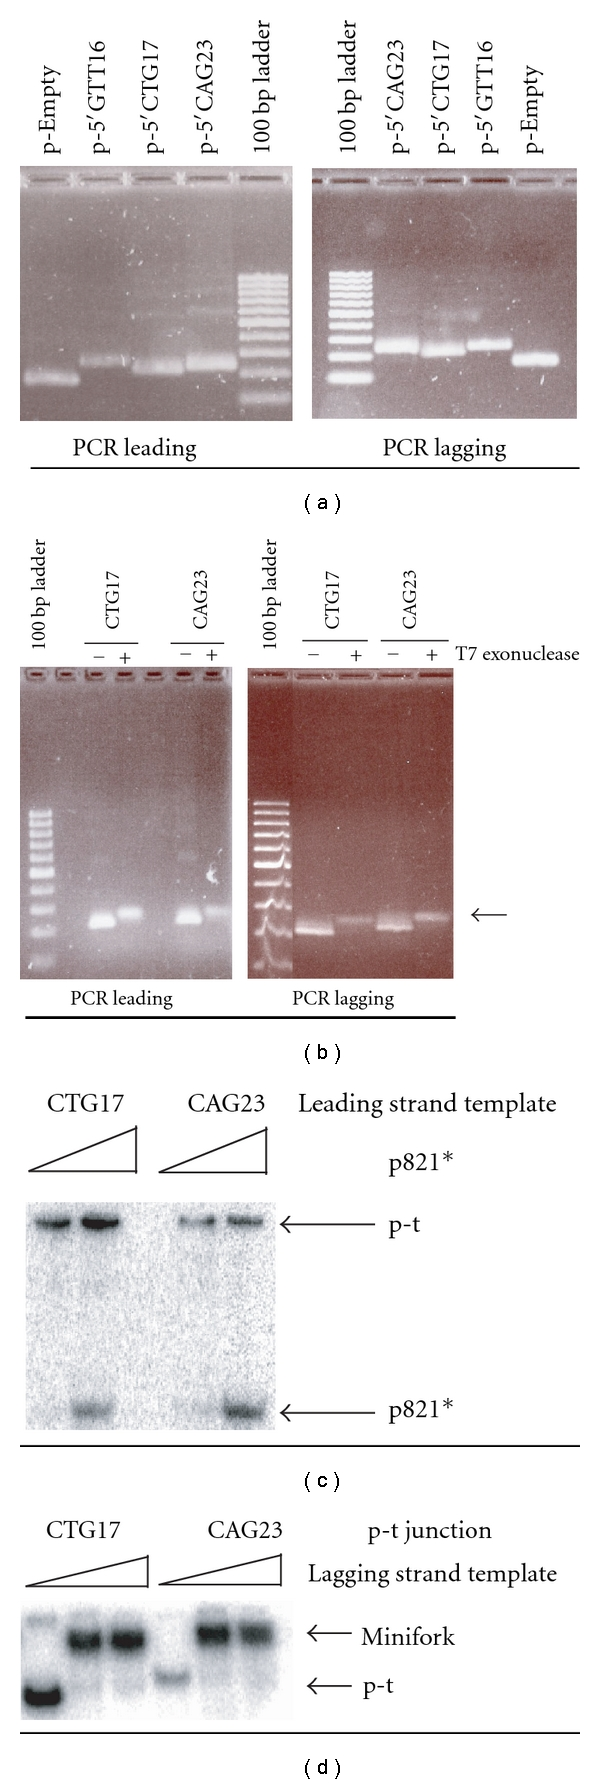 """Preparation of leading and lagging strand templates, p-t junctions and miniforks. The DNA fragments in the 100 base pair (bp) ladder are 100, 200, 300, 400, 500/517, 600, 700, 800, 900, and 1000 pbs. (a) The agarose gels stained by ethidium bromide (EtBr) show the products of the PCR obtained with the four plasmids (p-Empty, p-5′GTT16, p-5′CTG17, and p-5′CAG23) and the oligonucleotide couple specific of the leading (""""PCR leading""""; left) or the lagging (""""PCR lagging""""; right) strand. The name of the plasmids used for the PCR is indicated at the top of the gels. (b) The agarose gels stained by EtBr show the products of the T7 exonuclease digestion. The PCR products obtained with p-5′CTG17 (CTG17) and p-5′CAG23 (CAG23) and the oligonucleotide couple specific of the leading (""""PCR leading""""; left) or the lagging (""""PCR lagging""""; right) strand were treated (+) or not (−) by T7 exonuclease. After treatment with T7 exonuclease, the appearance of a DNA band with a slower electrophoretic migration and a weaker intensity (indicated by a backward arrow) than the ds DNA is indicative of ss DNA production. (c) The ss leading strand templates containing either 17 repeats of CTG (CTG17) or 23 repeats of (CAG23) are mixed with increasing amounts of radiolabelled p821 (p821*) to generate the p-t junctions. Species are resolved on a native gel. Free p821 migrates faster than the p-t junctions. (d) The p-t junctions containing 17 repeats of CTG (CTG17) or 23 repeats of (CAG23) on their leading strand are mixed with increasing amounts of ss lagging strand template to assemble the miniforks. Species are resolved on a native gel. The miniforks migrate more slowly than the p-t junctions."""